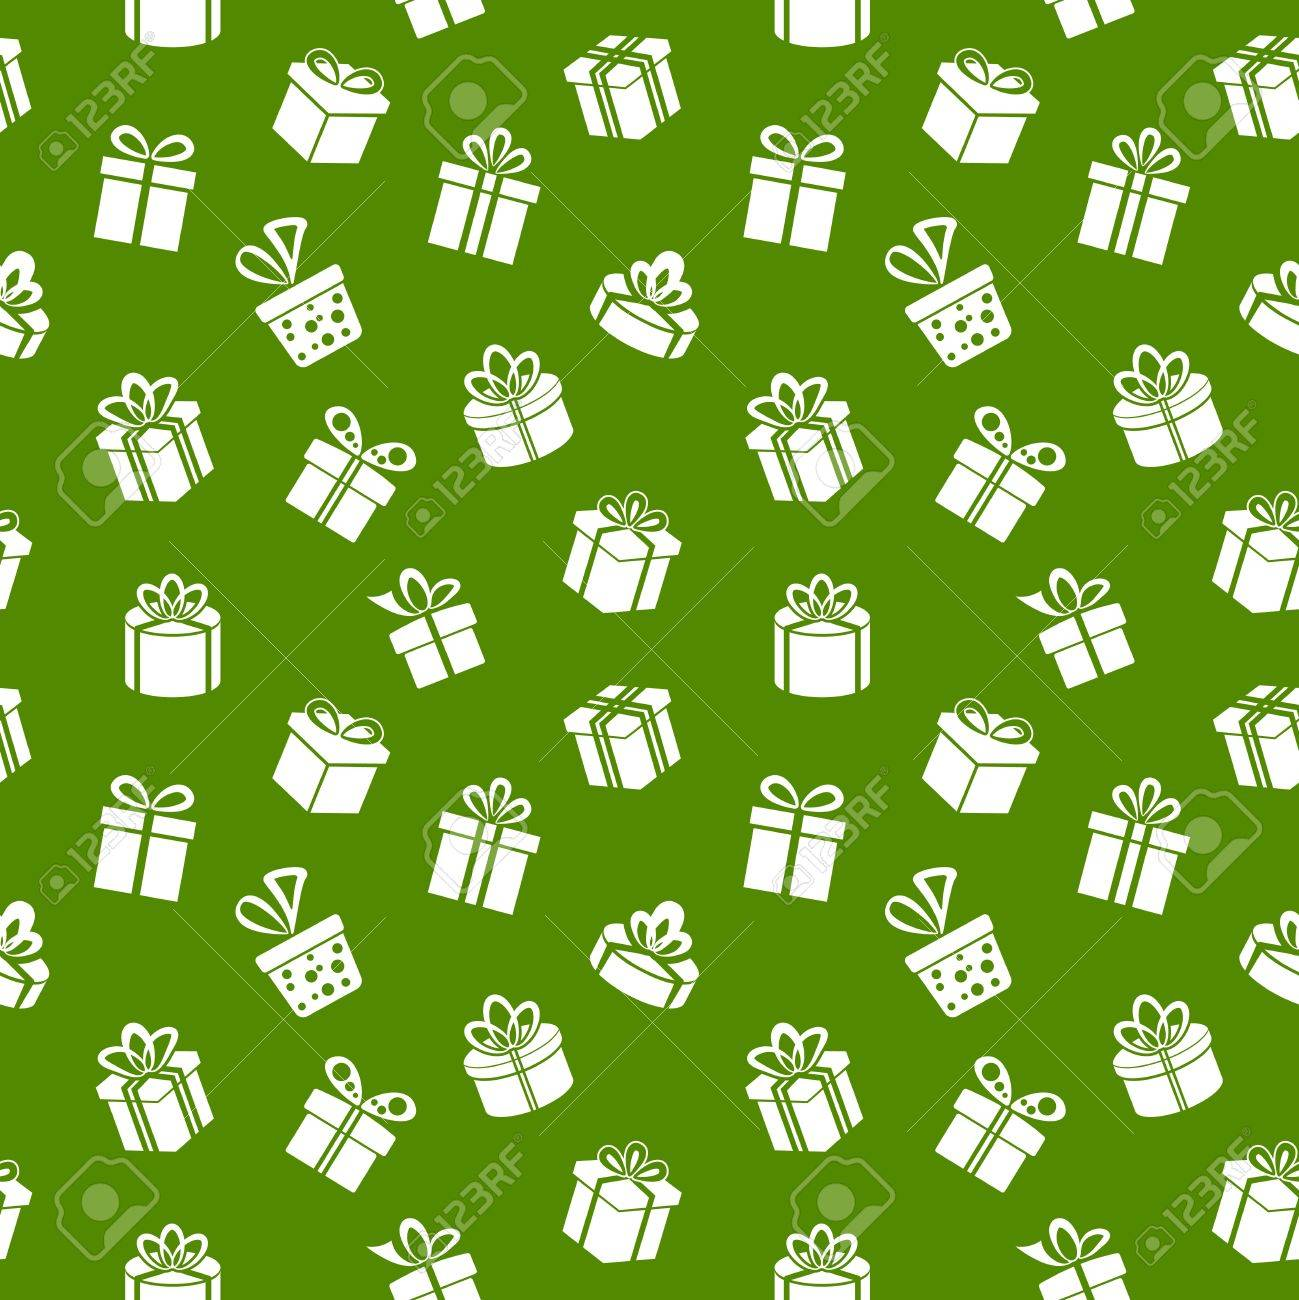 Vector Seamless Gift Pattern on green background Stock Vector - 20881150